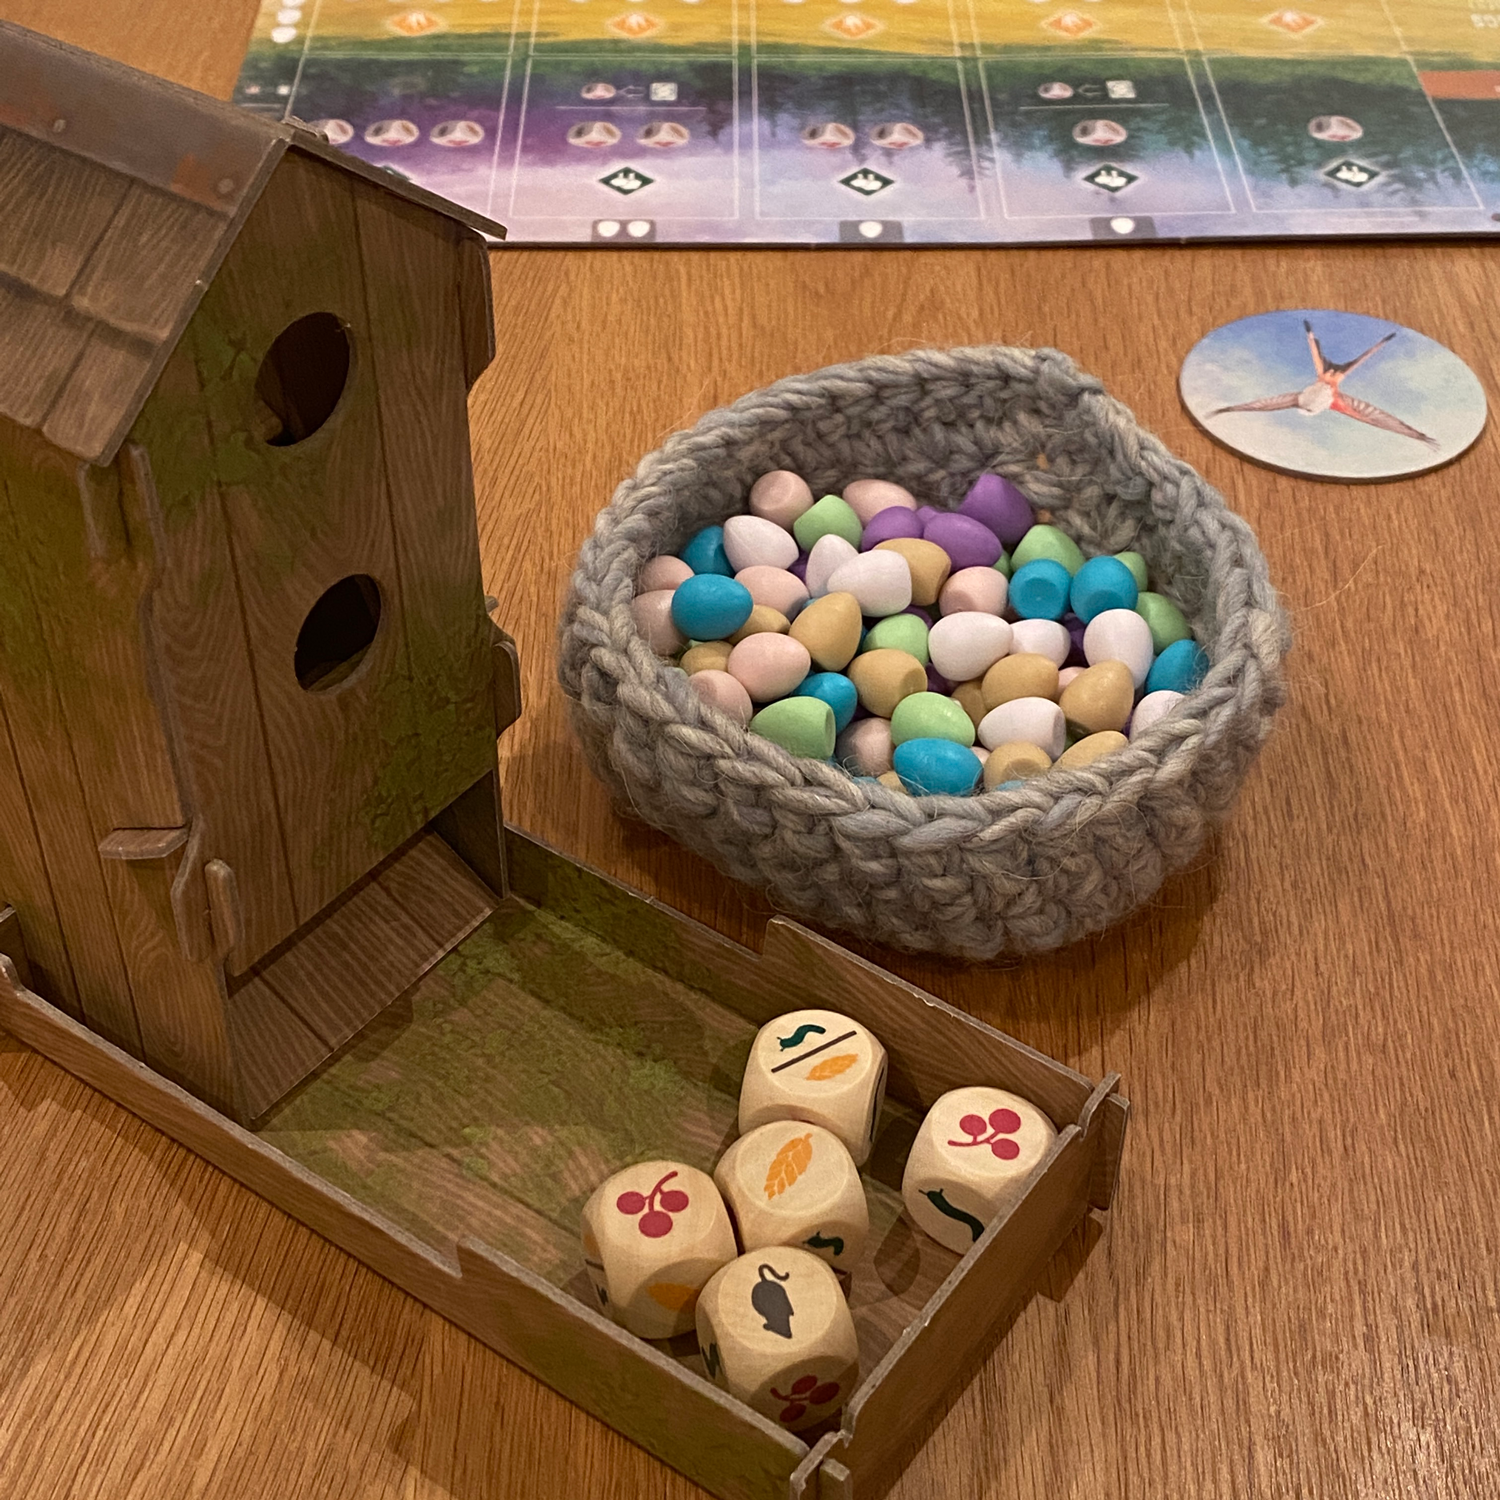 Wingspan-Dice-Tower-and-Eggs